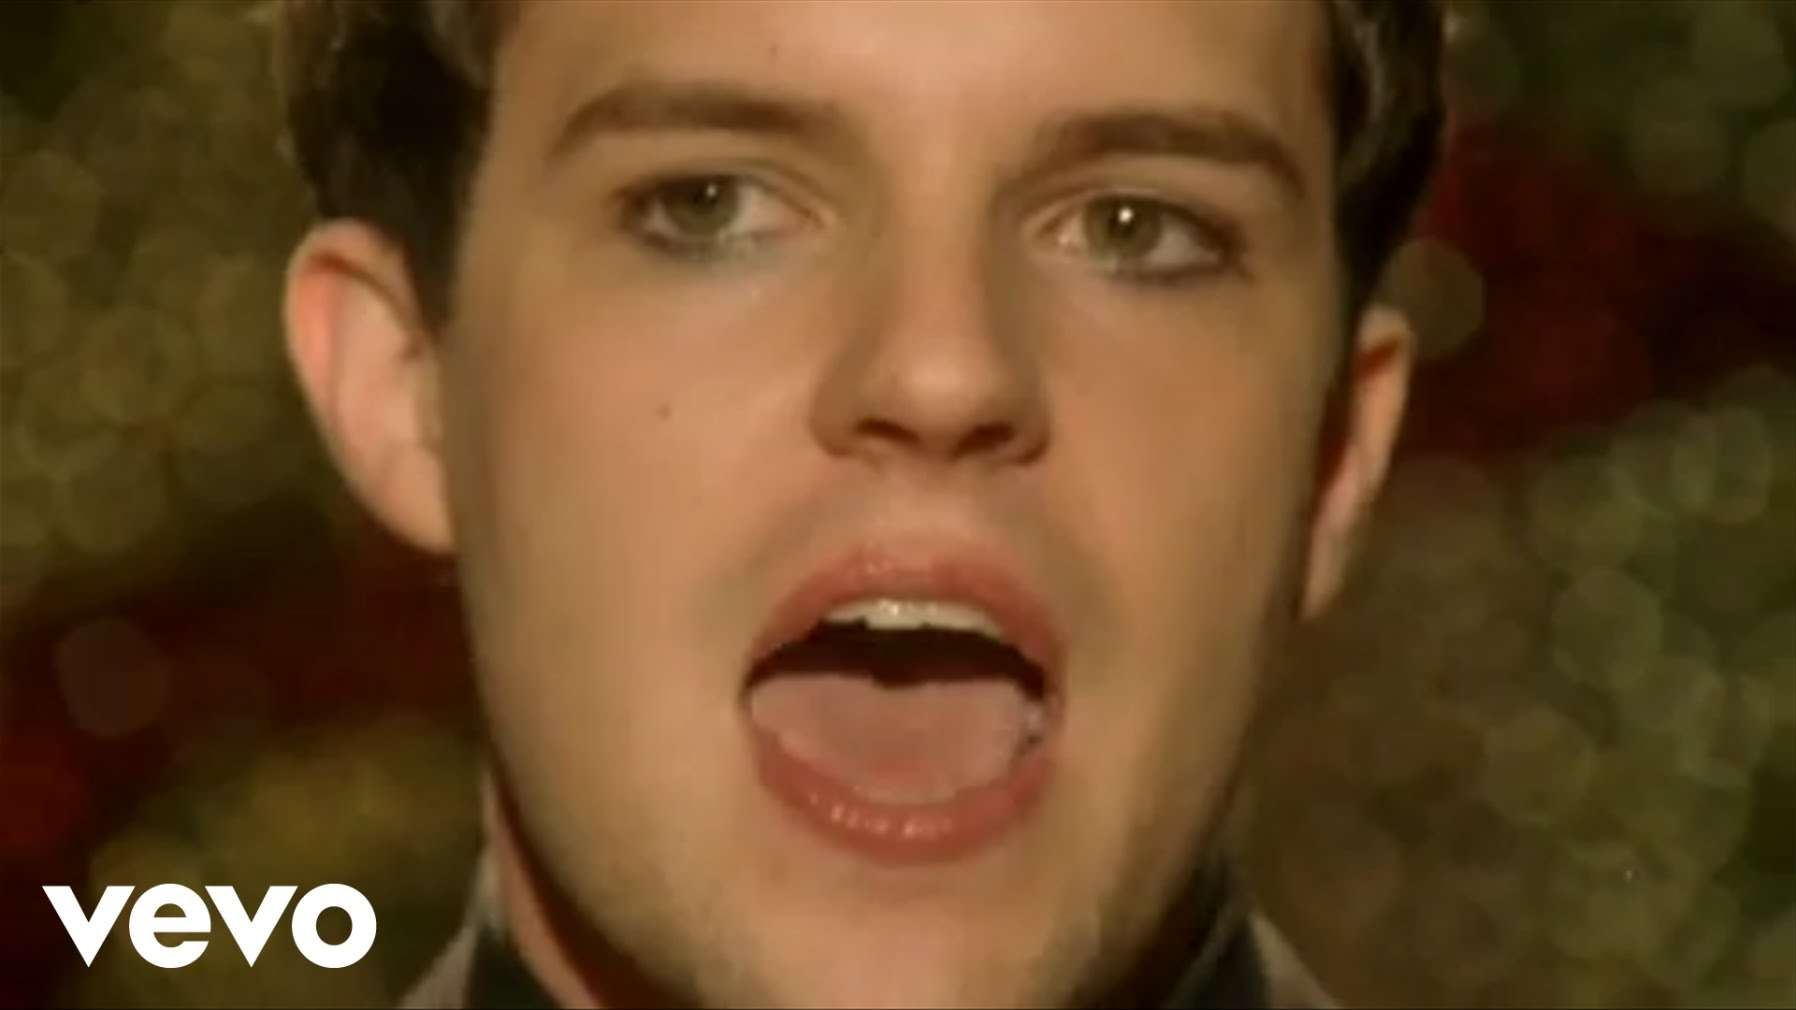 The Killers - Mr. Brightside - YouTube